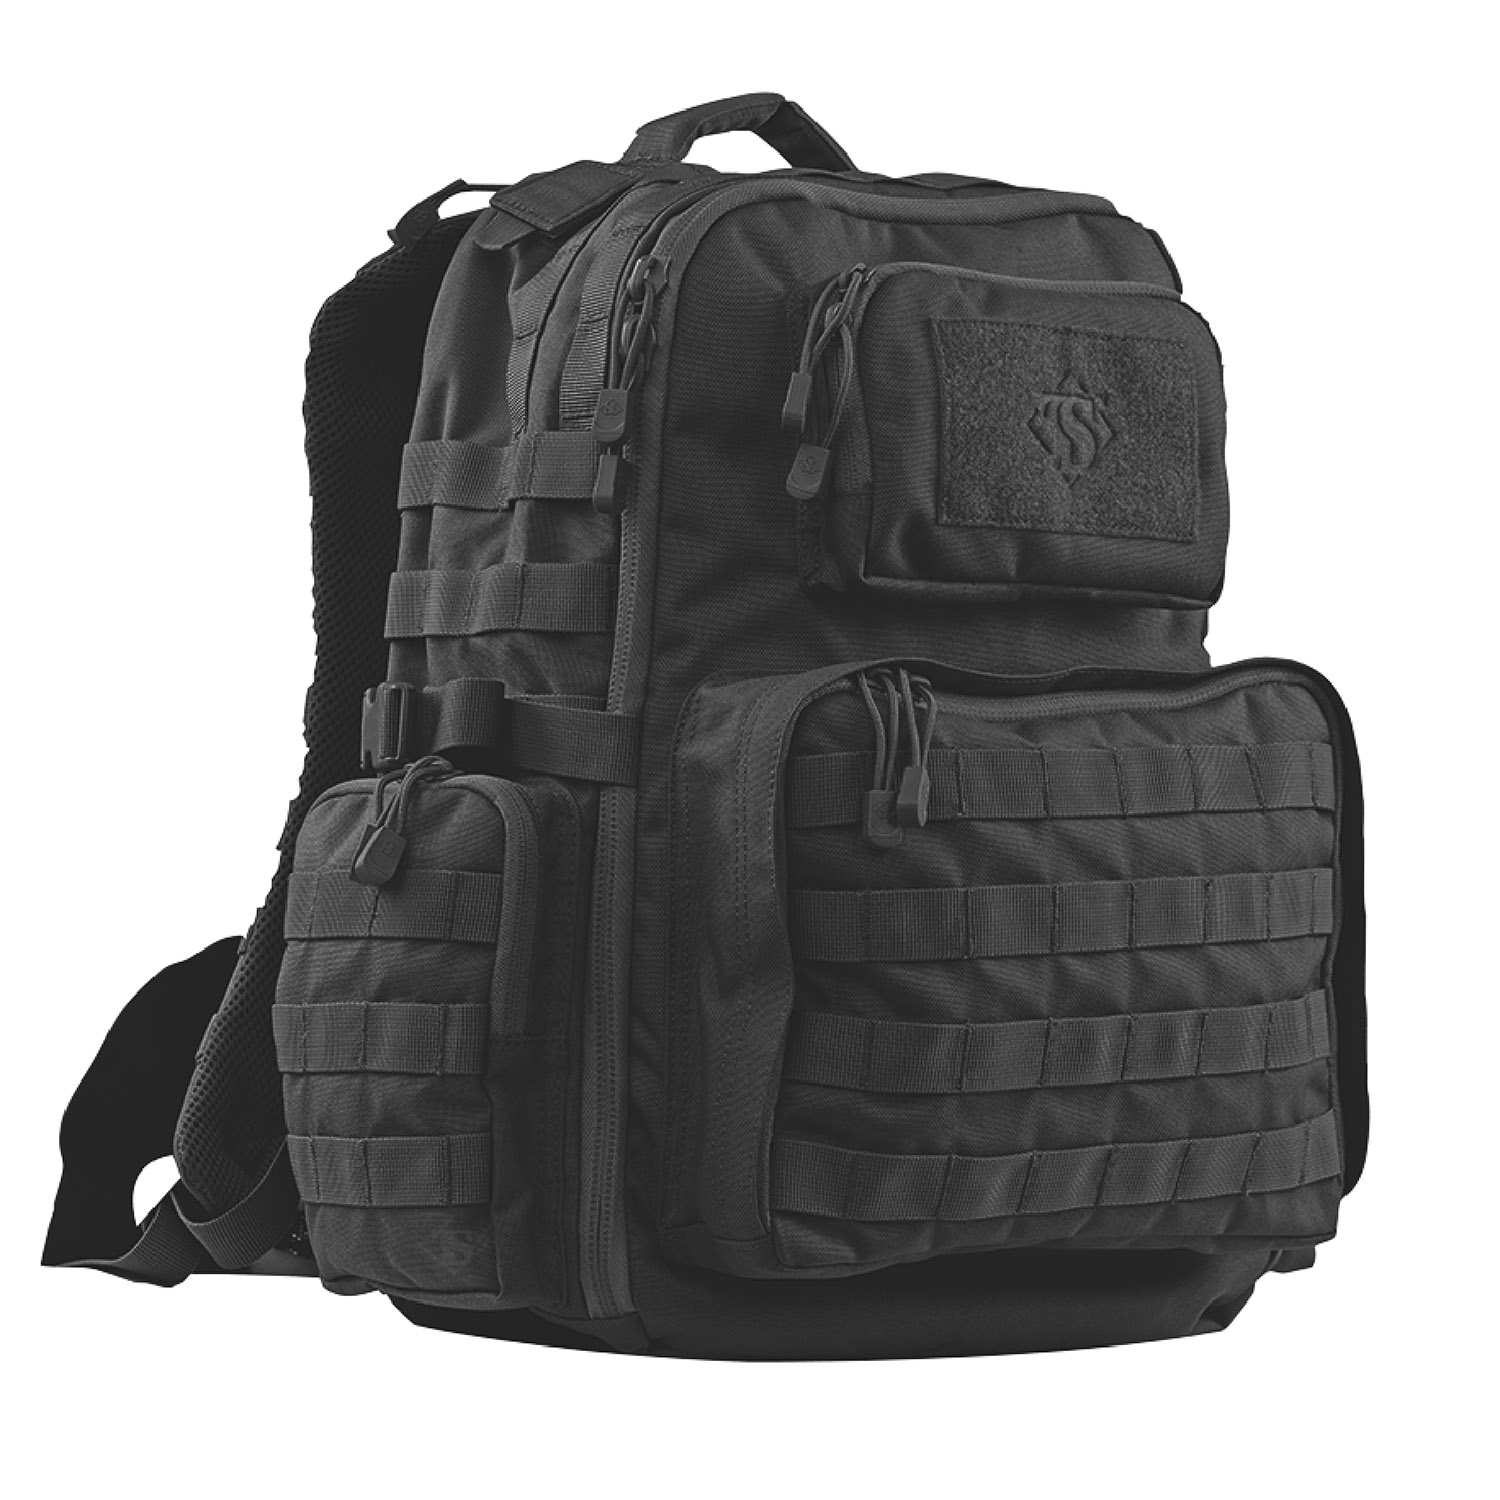 Tru-Spec Pathfinder 2.5 Backpack